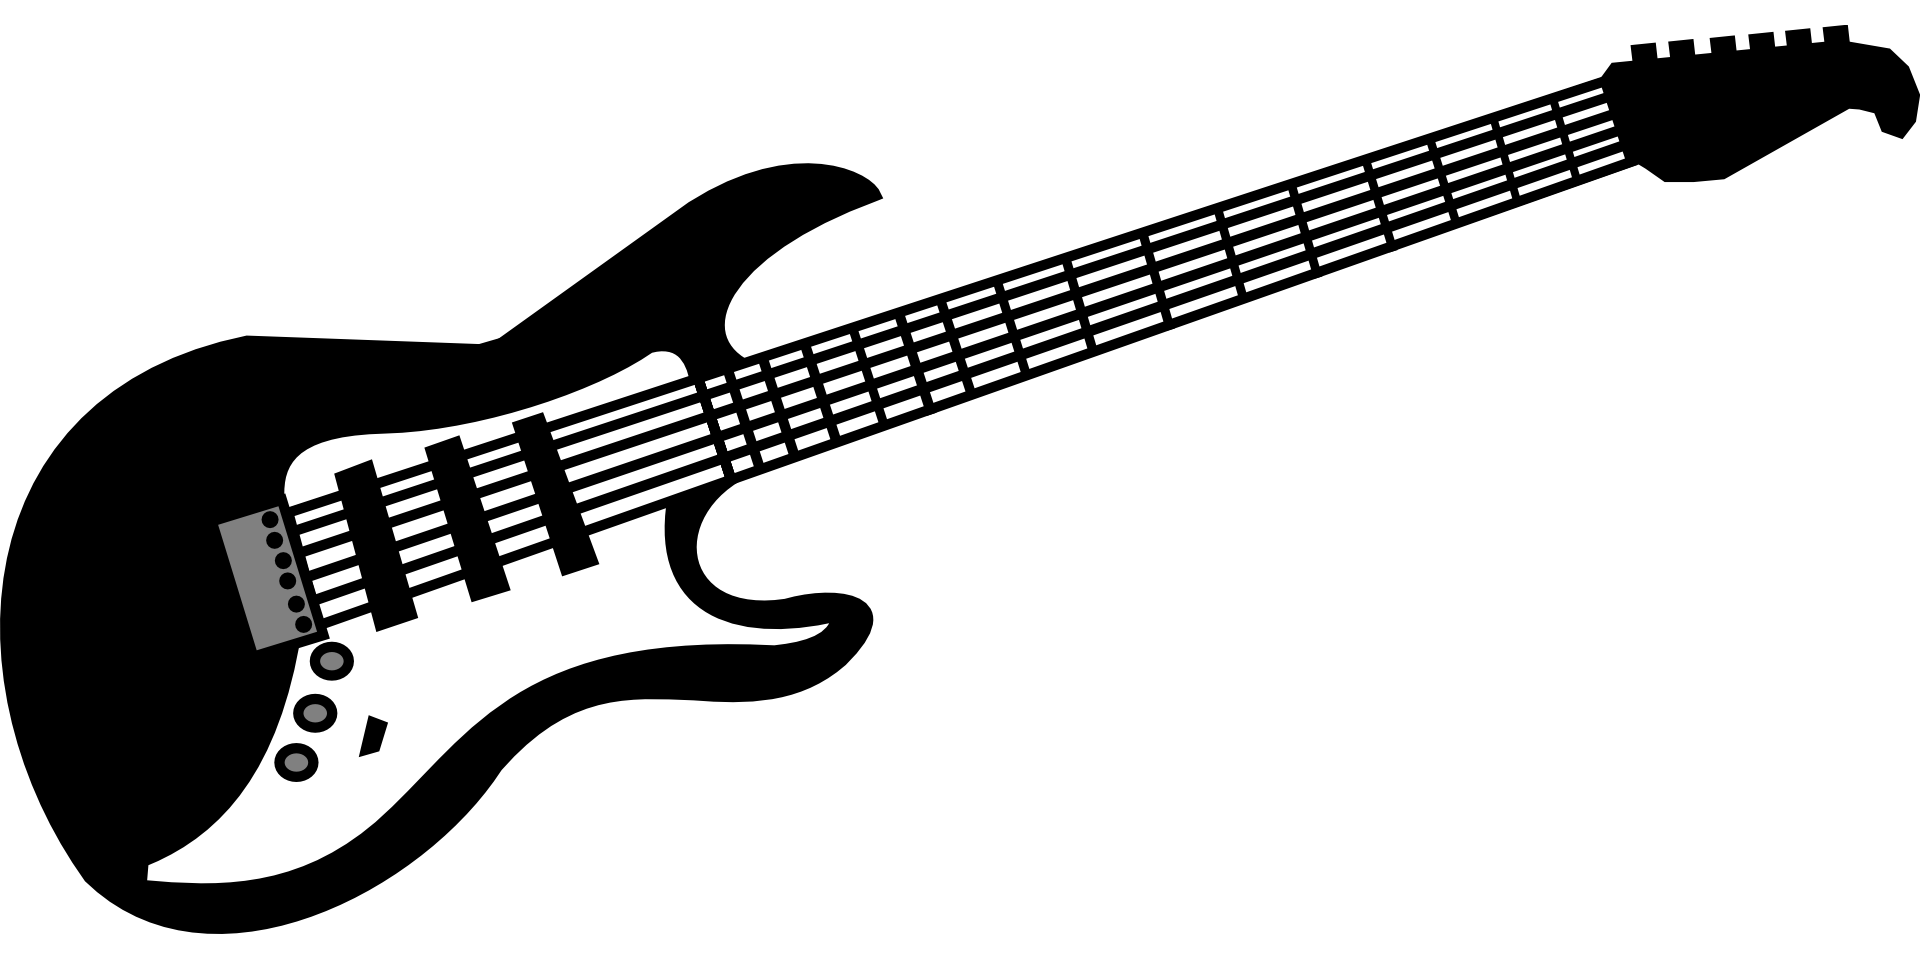 freeuse download Musical instrument clipart black and white. Guitar electric music rock